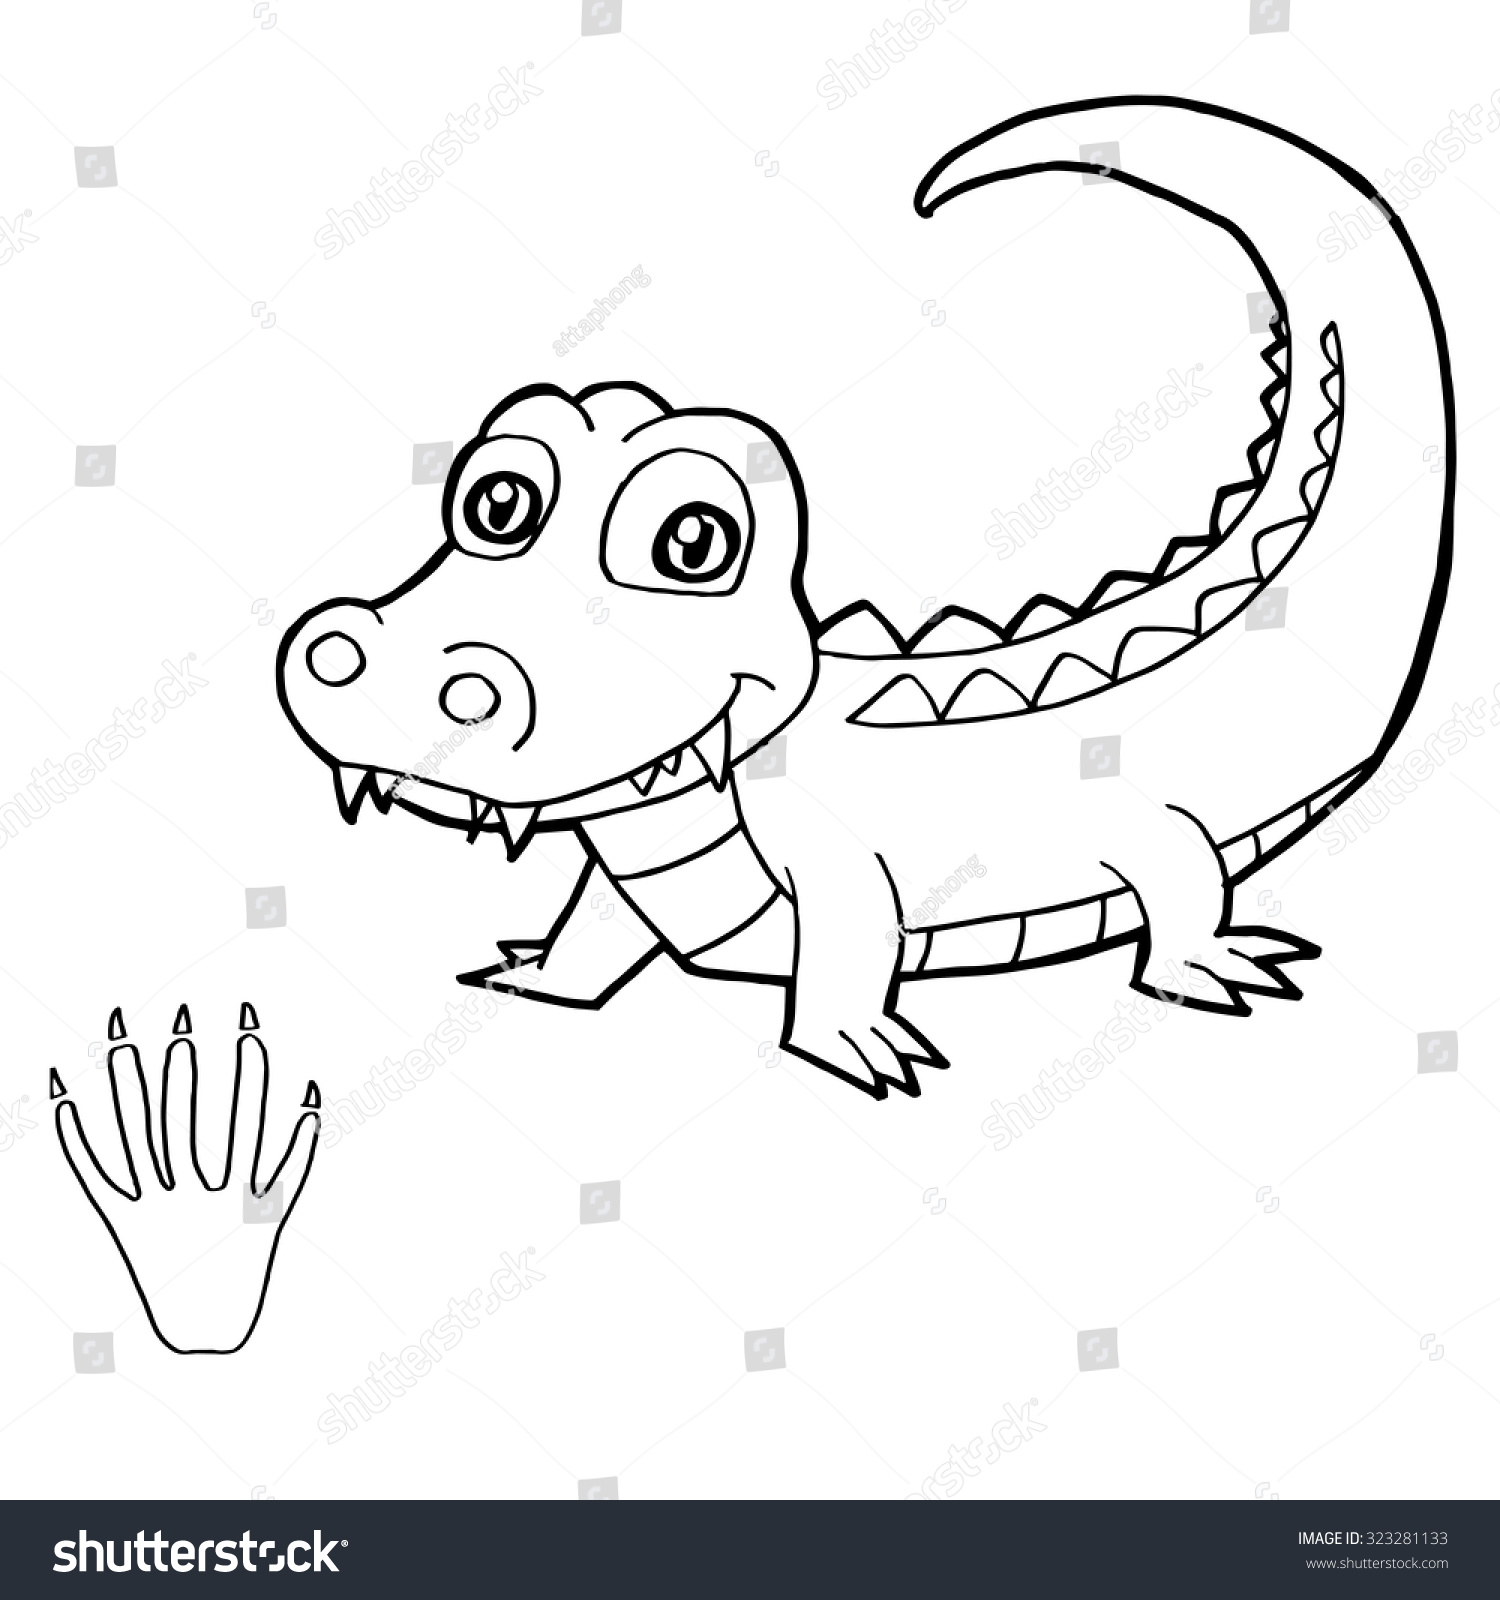 paw print crocodile coloring page vector stock vector 323281133 ... - Crocodile Coloring Pages Print